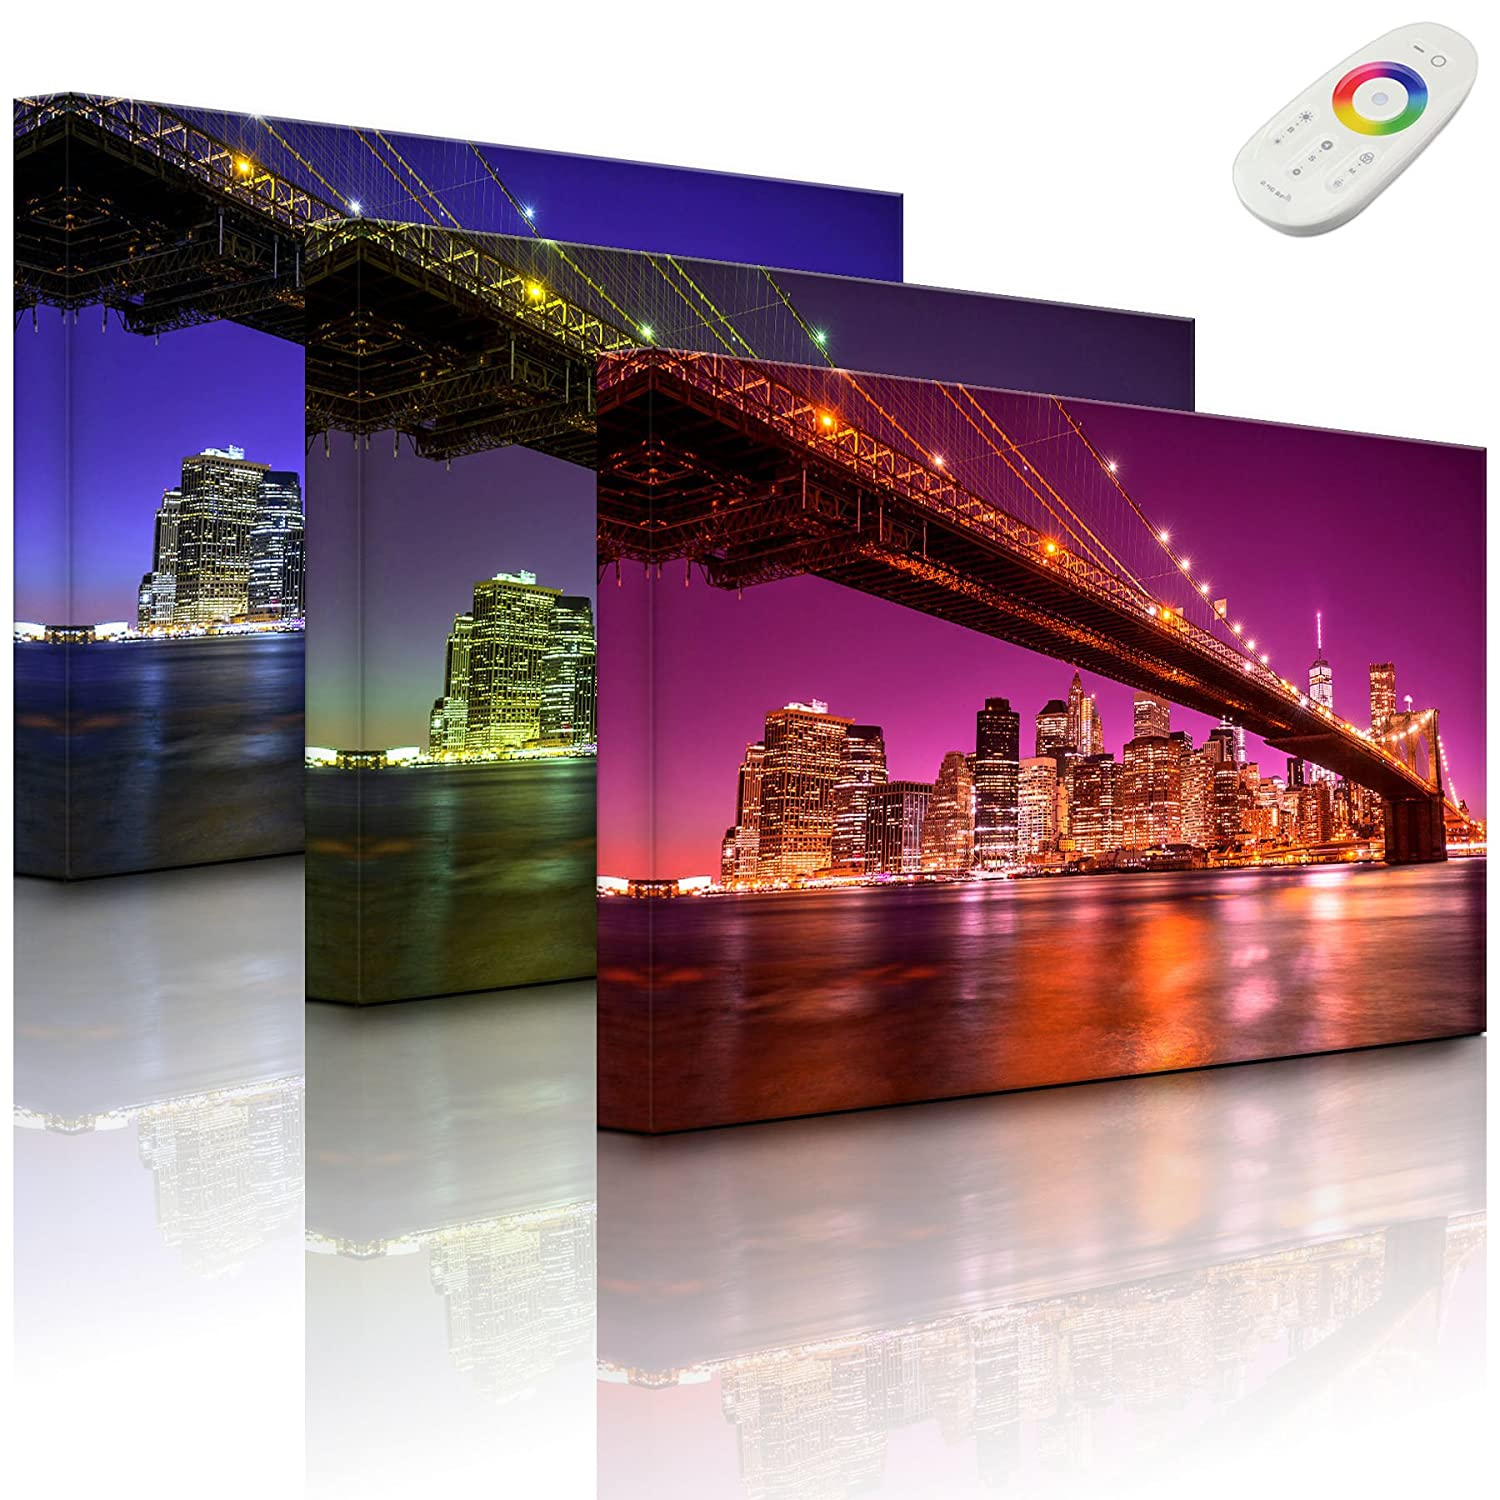 Art canvas with LED lighting - Skyline of Manhattan - 60 x 40 cm - front lighted Rossteutscher GbR